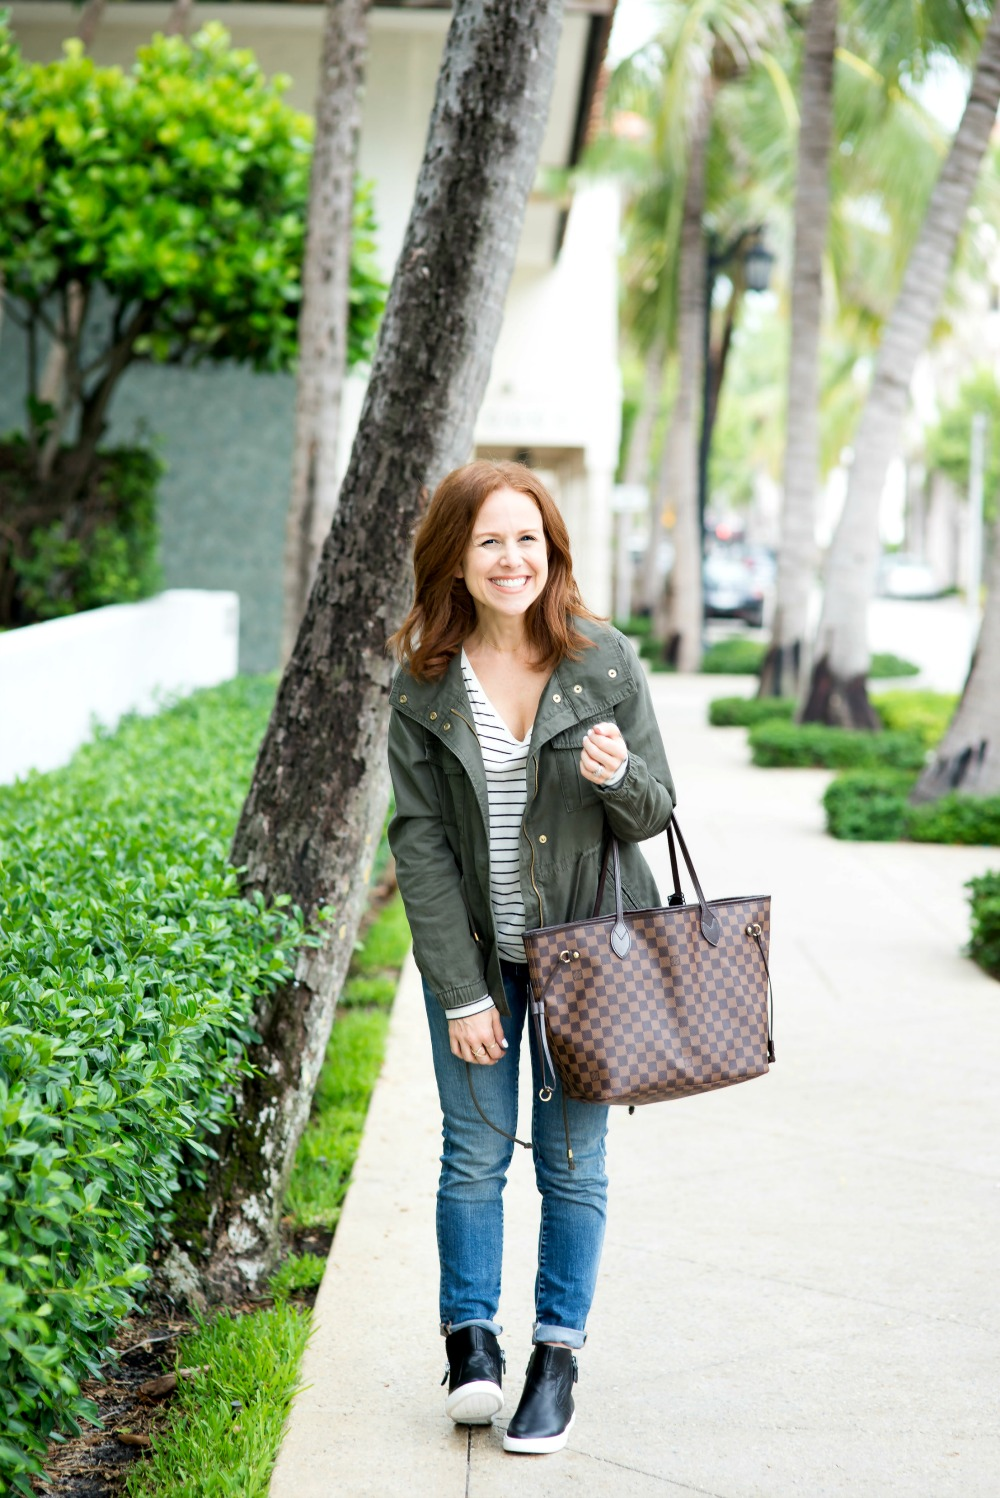 Fall outfit inspiration (basic girl uniform -- just add a starbucks cup!) // the modern savvy, a life & style blog